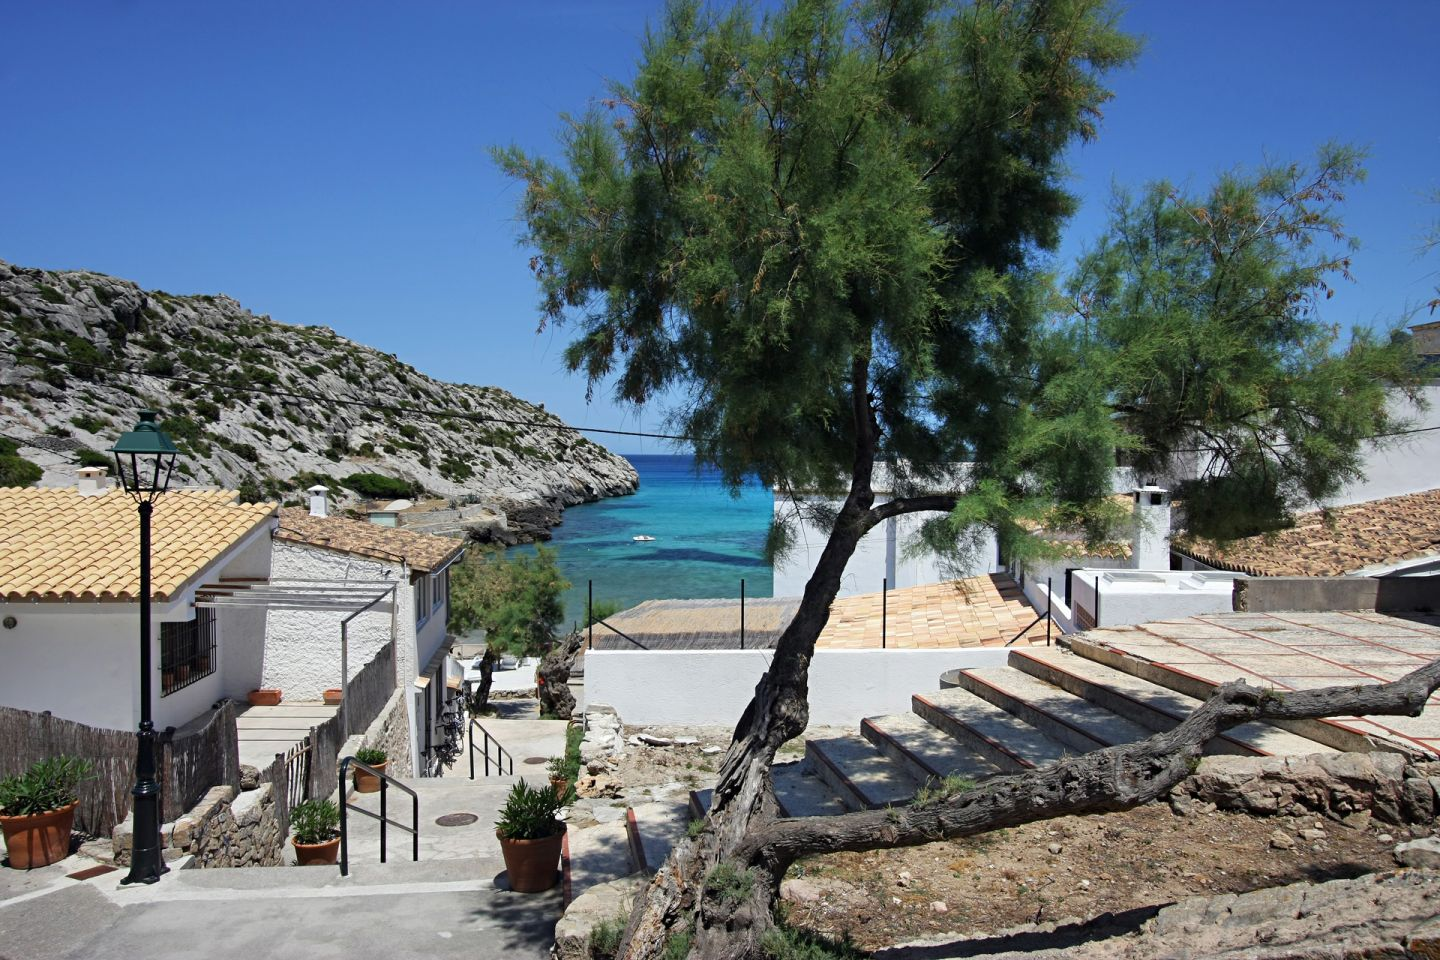 2 Bed Ground Floor for sale in Cala San Vicente 12